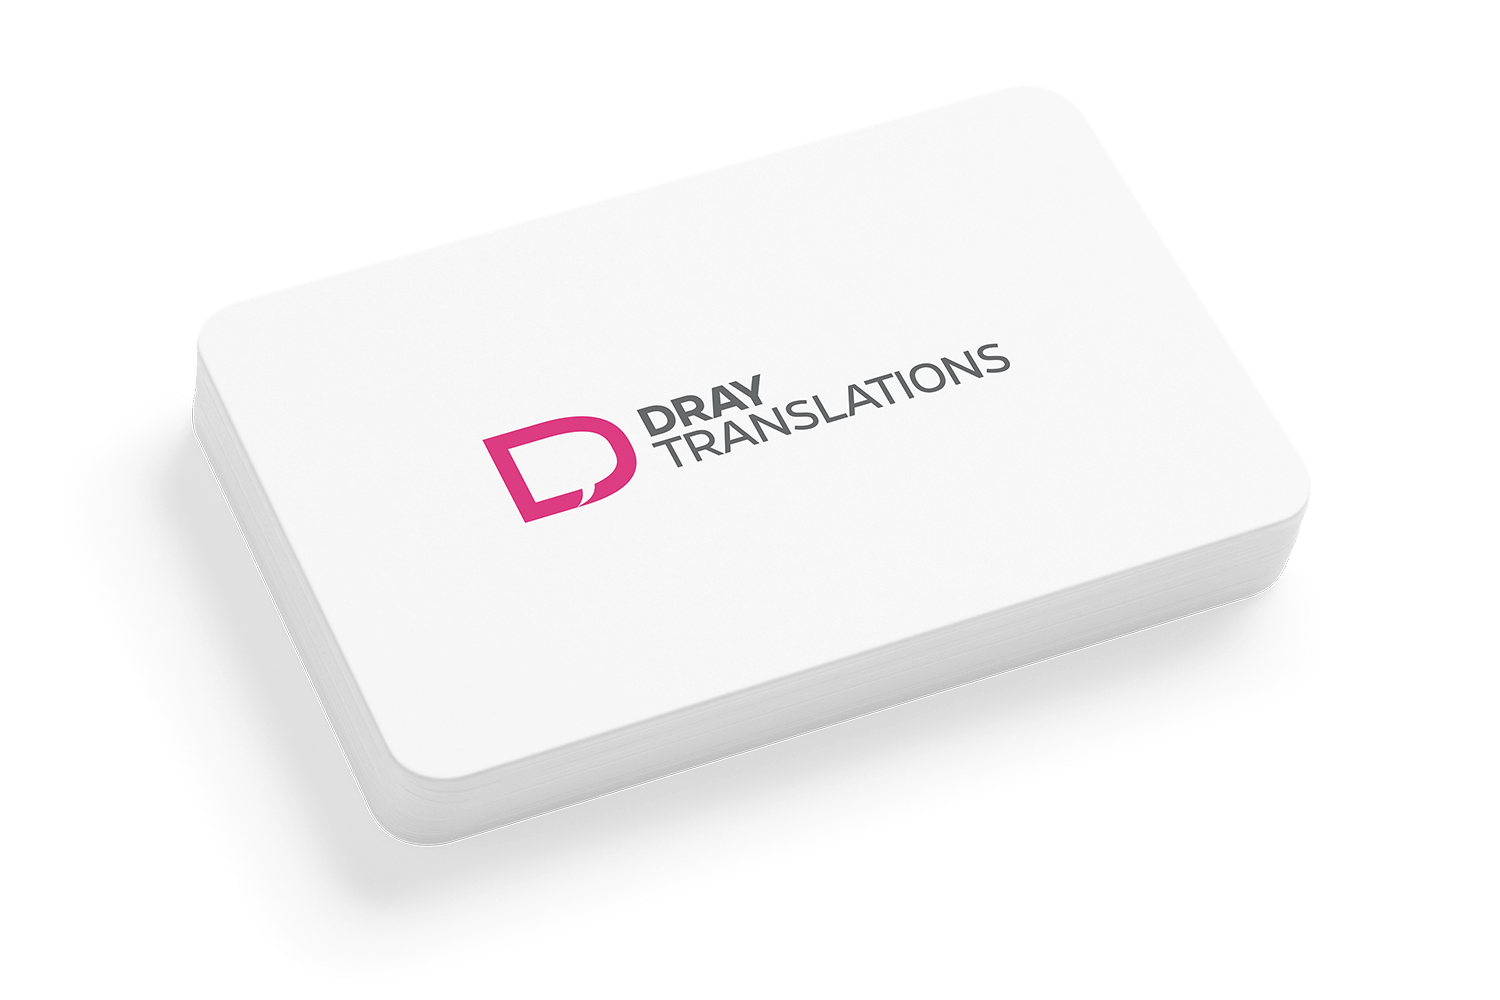 Dray Translations - Business Card 1274 2019-09-19 even smaller - Natie Branding Agency